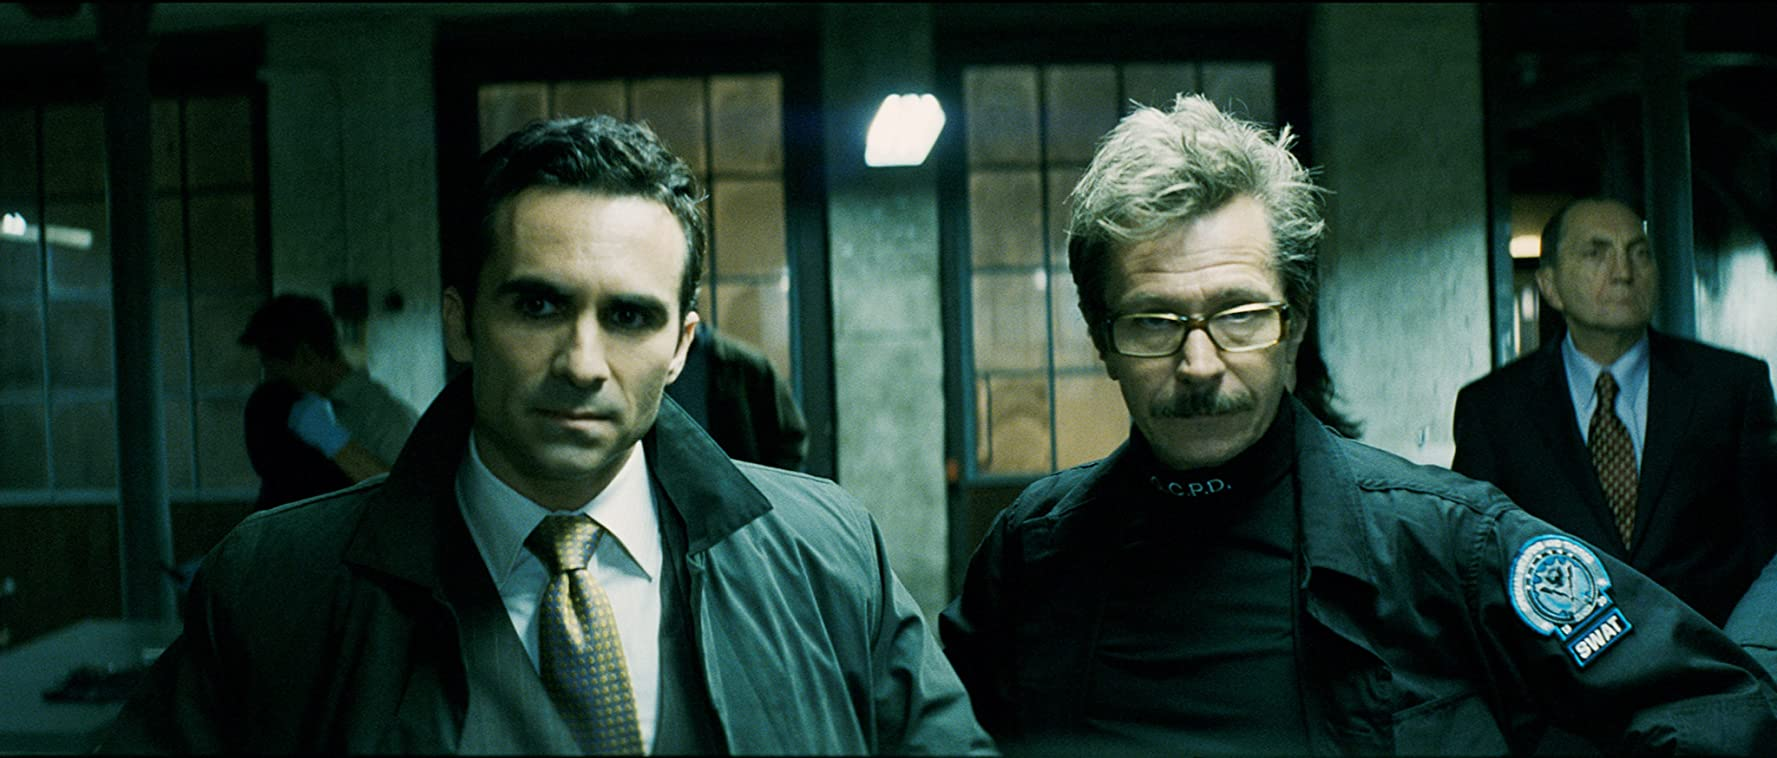 Gary Oldman and Nestor Carbonell in The Dark Knight (2008)